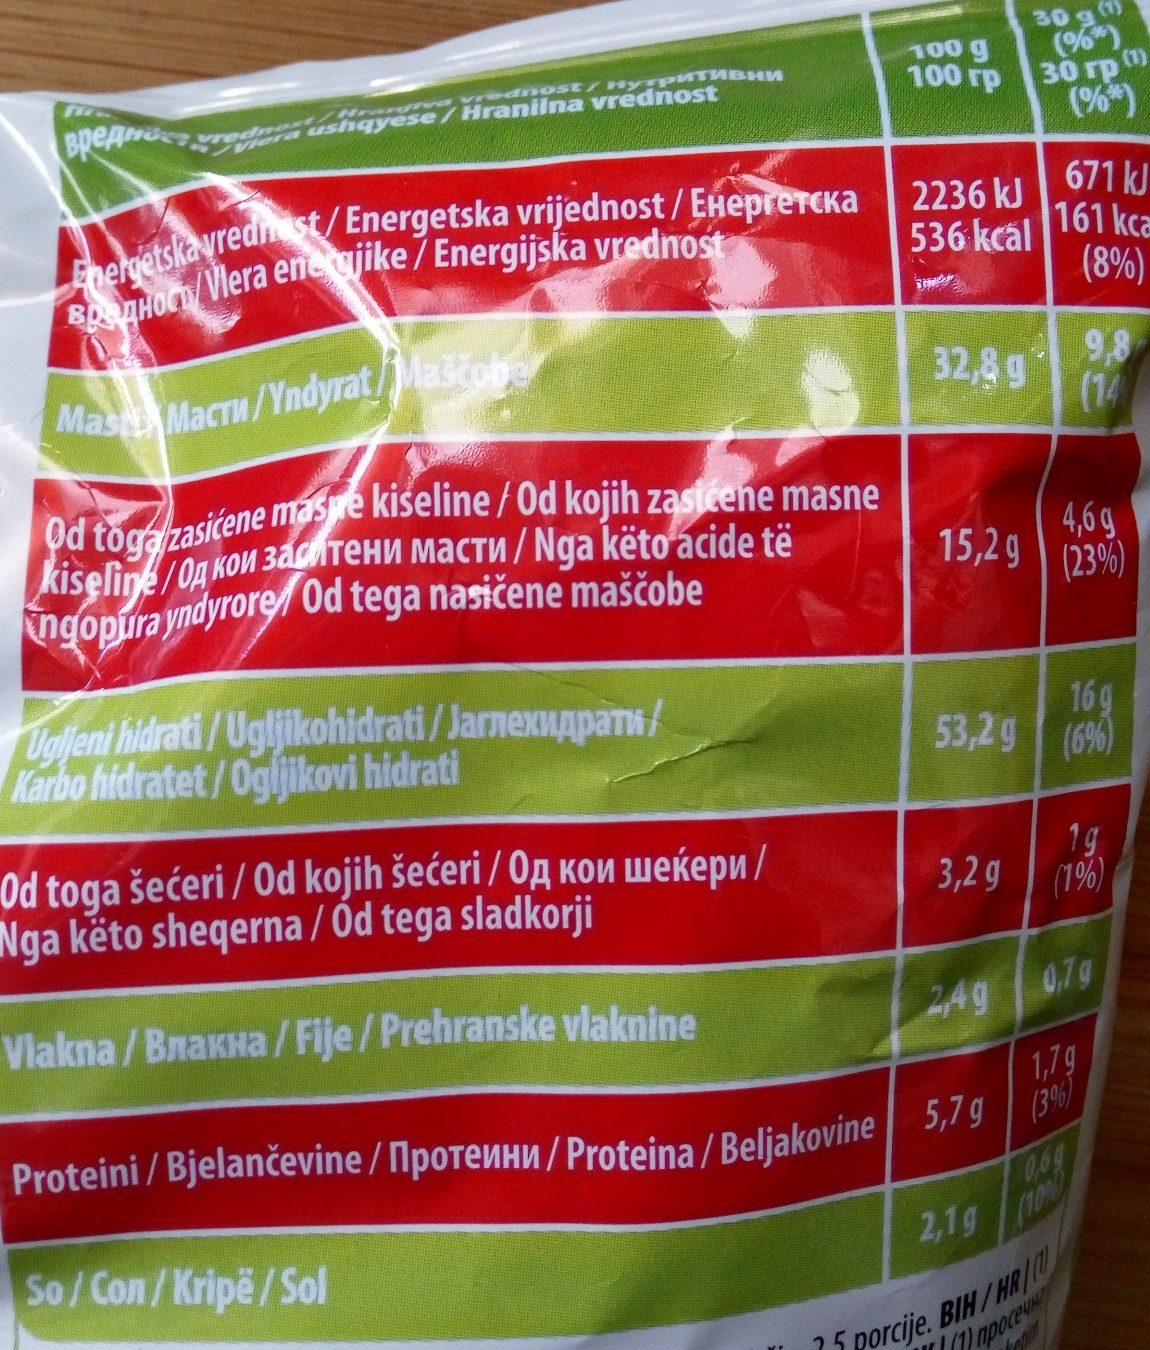 MIX sir, origano, kečap - Nutrition facts